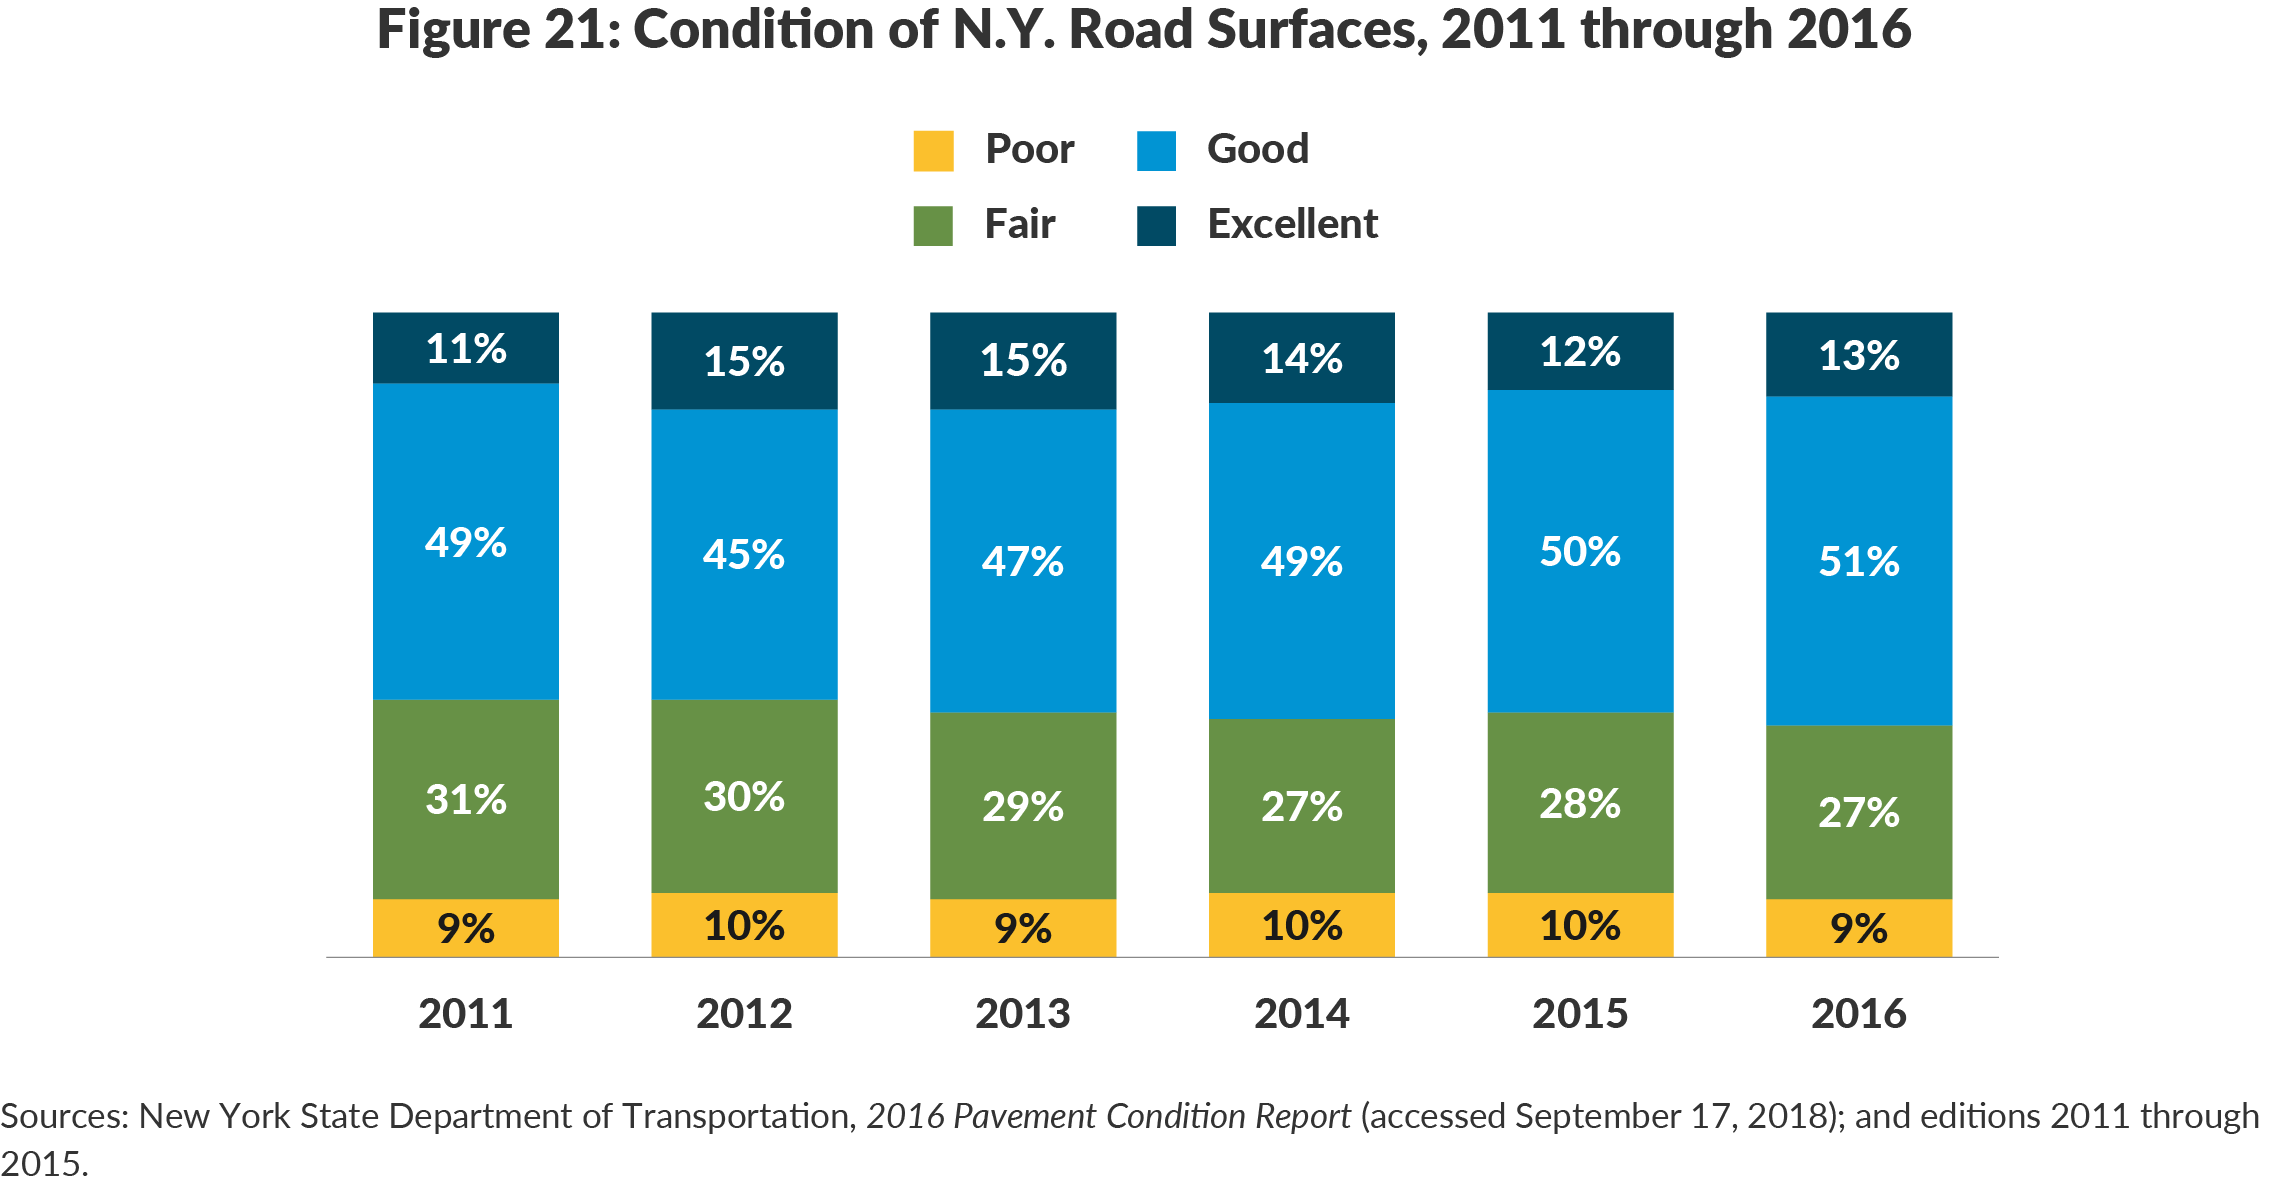 Figure 21: Condition of N.Y. Road Surfaces, 2011 through 2016